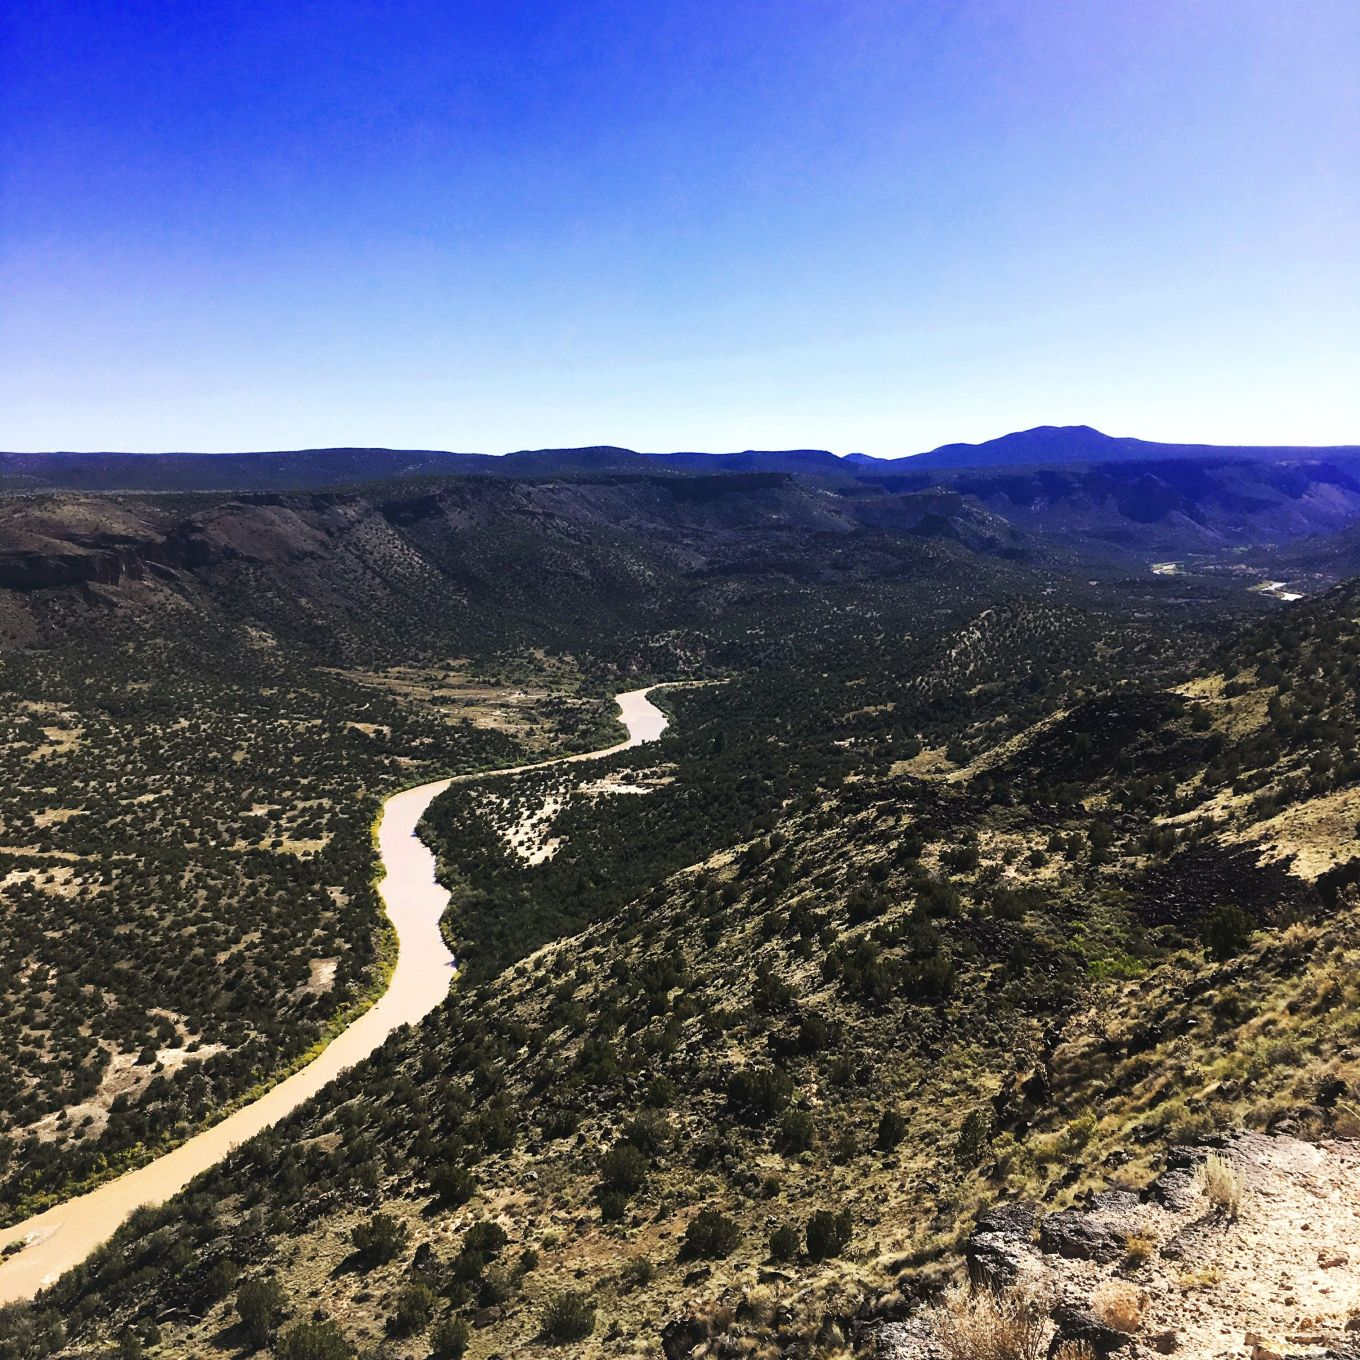 Rio Grande Gorge and River From White Rock Overlook, NM